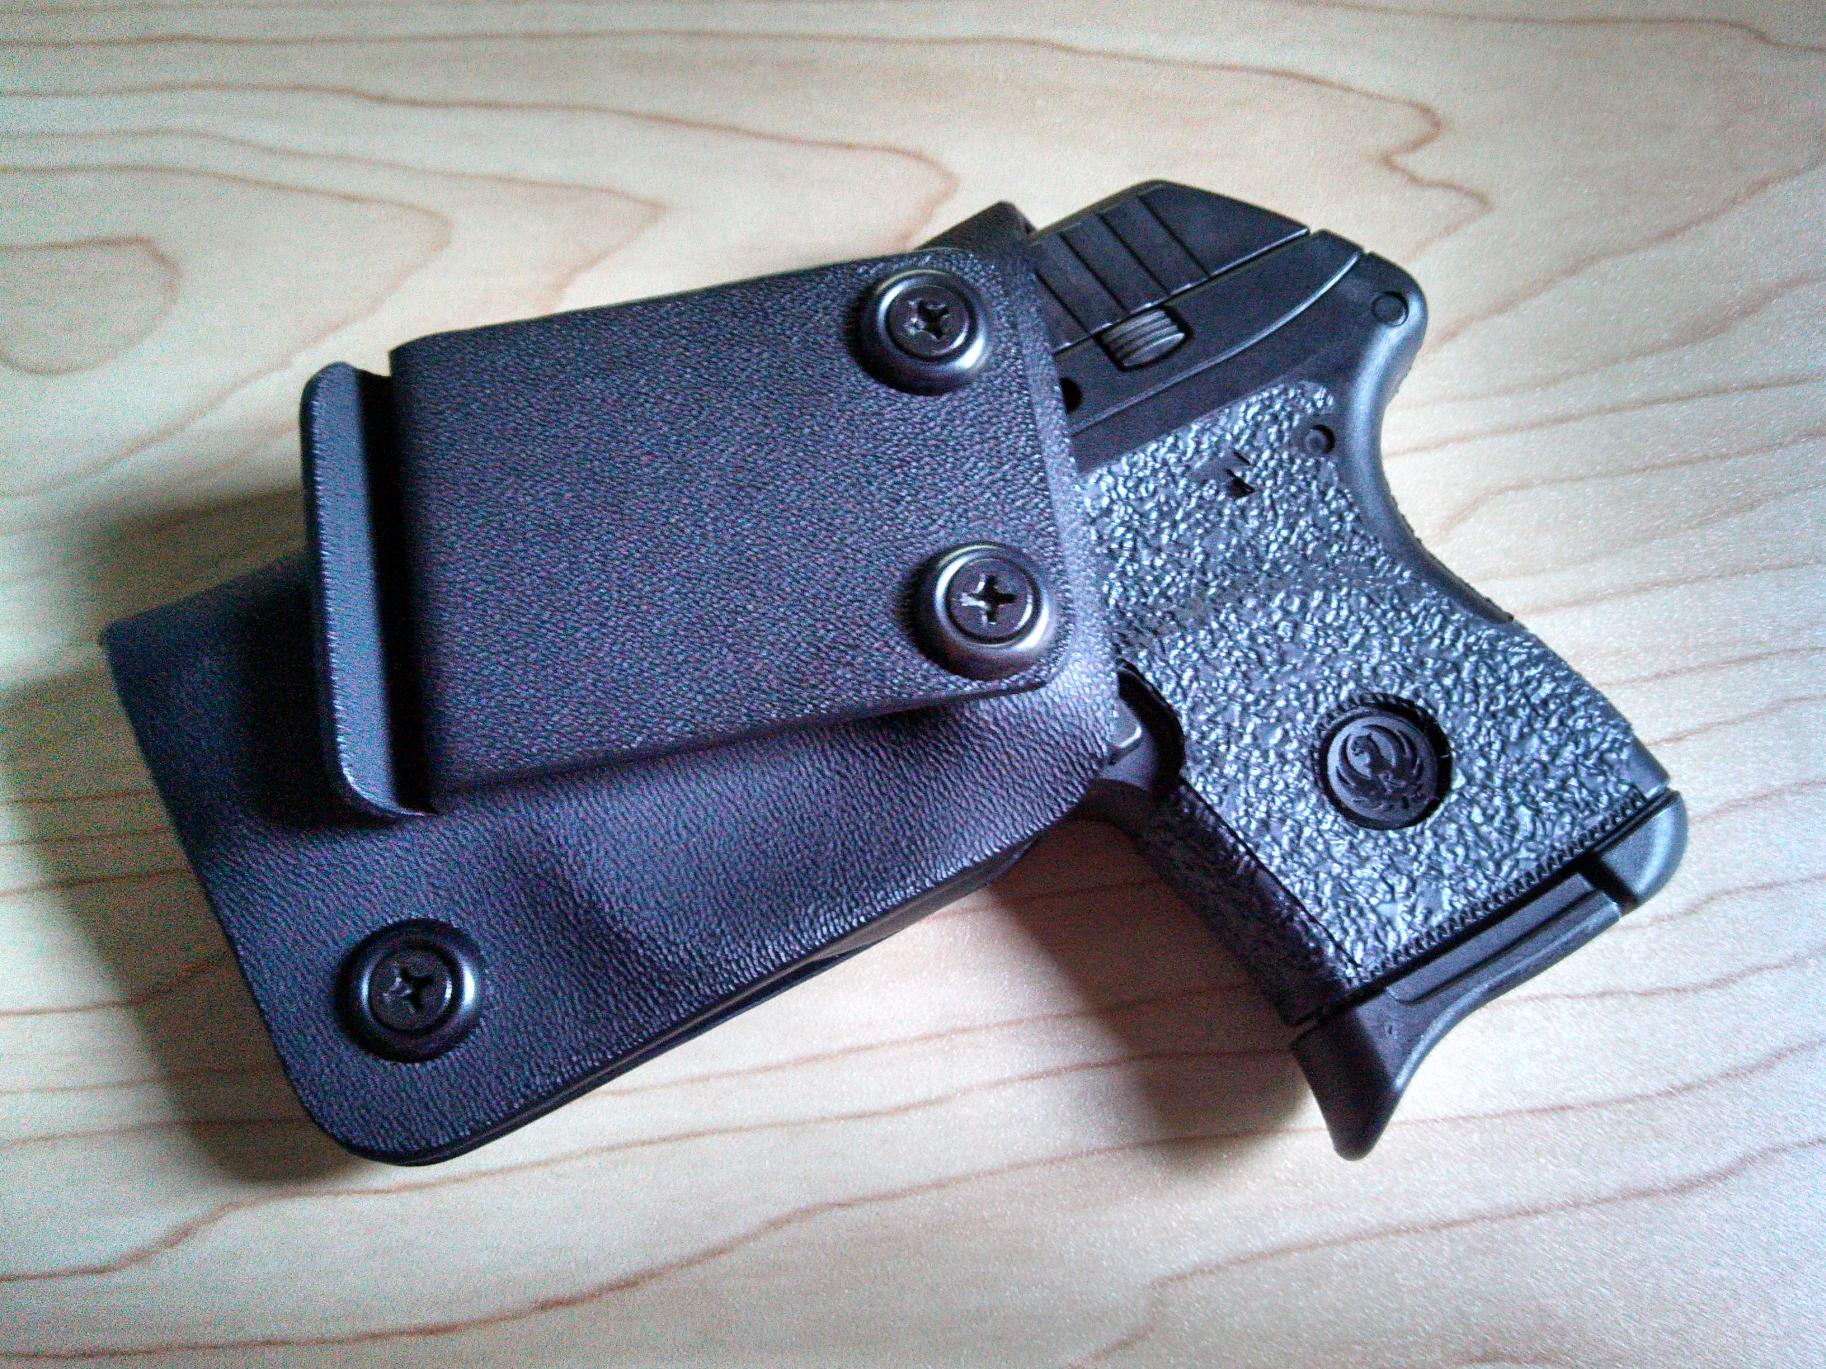 Single Clip Kydex holsters with adjustable cant-img_20130711_171202_958.jpg